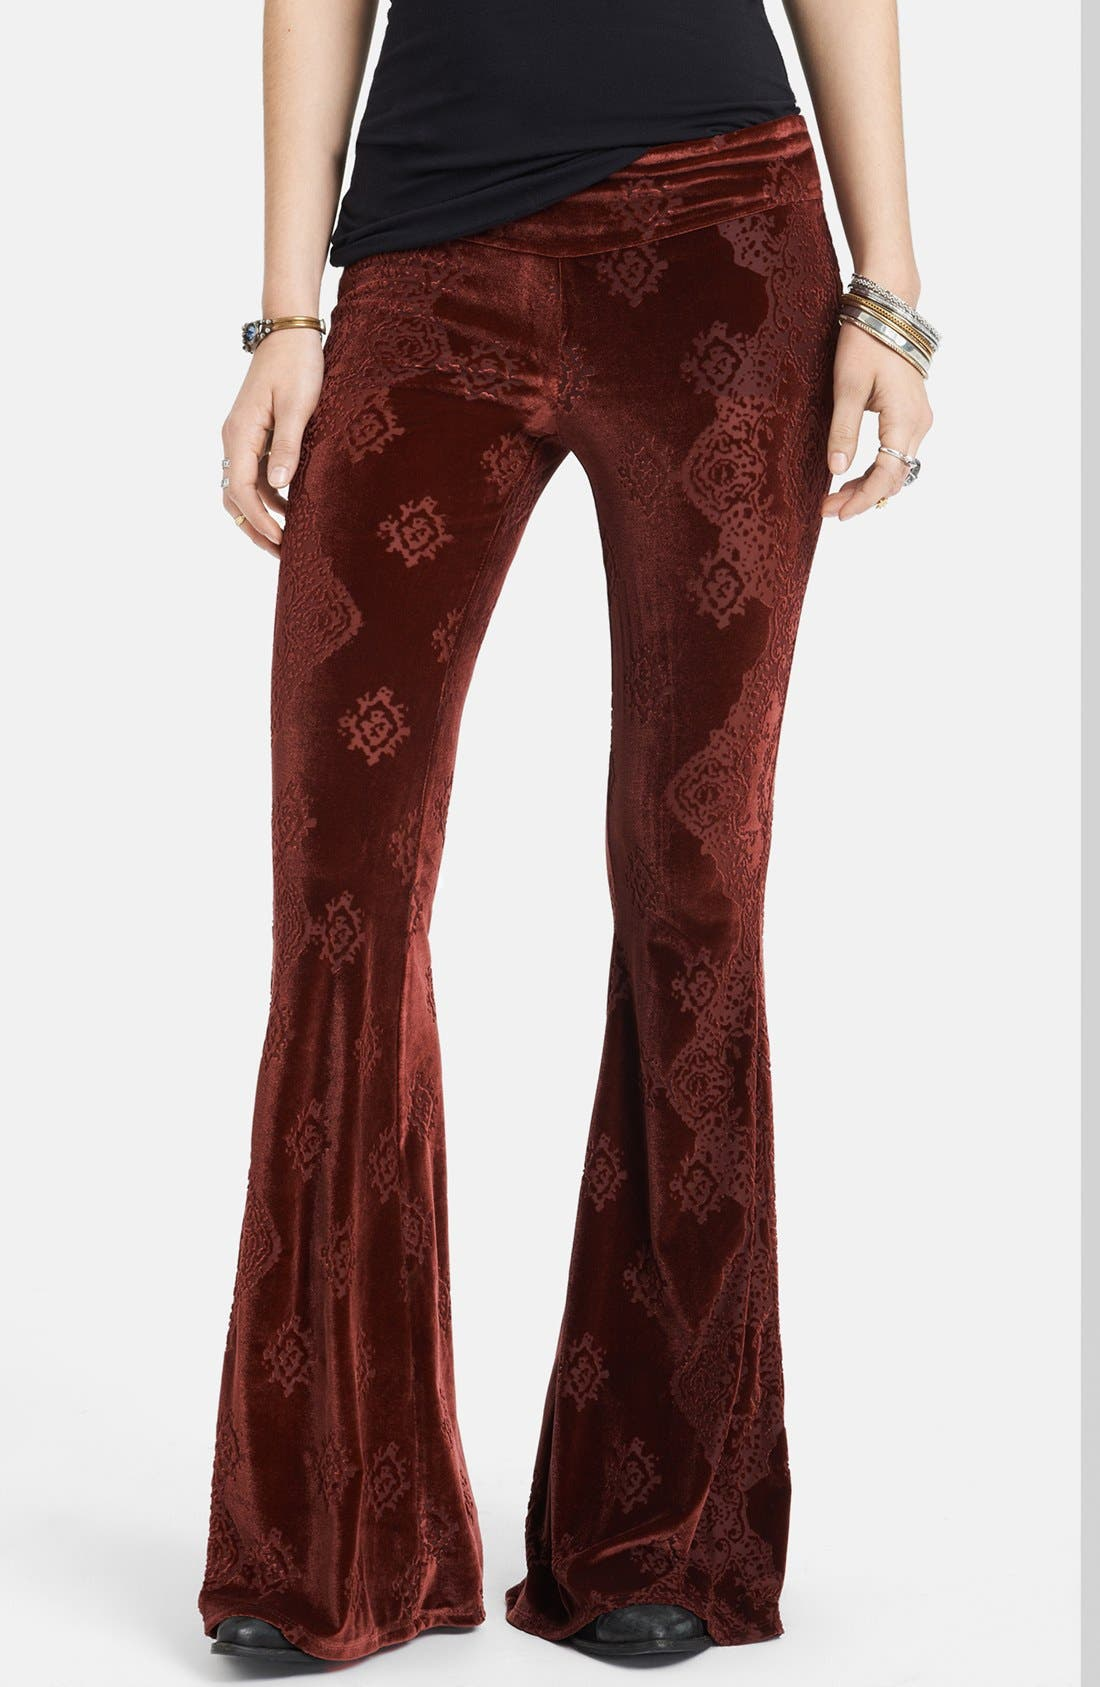 Alternate Image 1 Selected - Free People Patterned Velvet Flared Pants